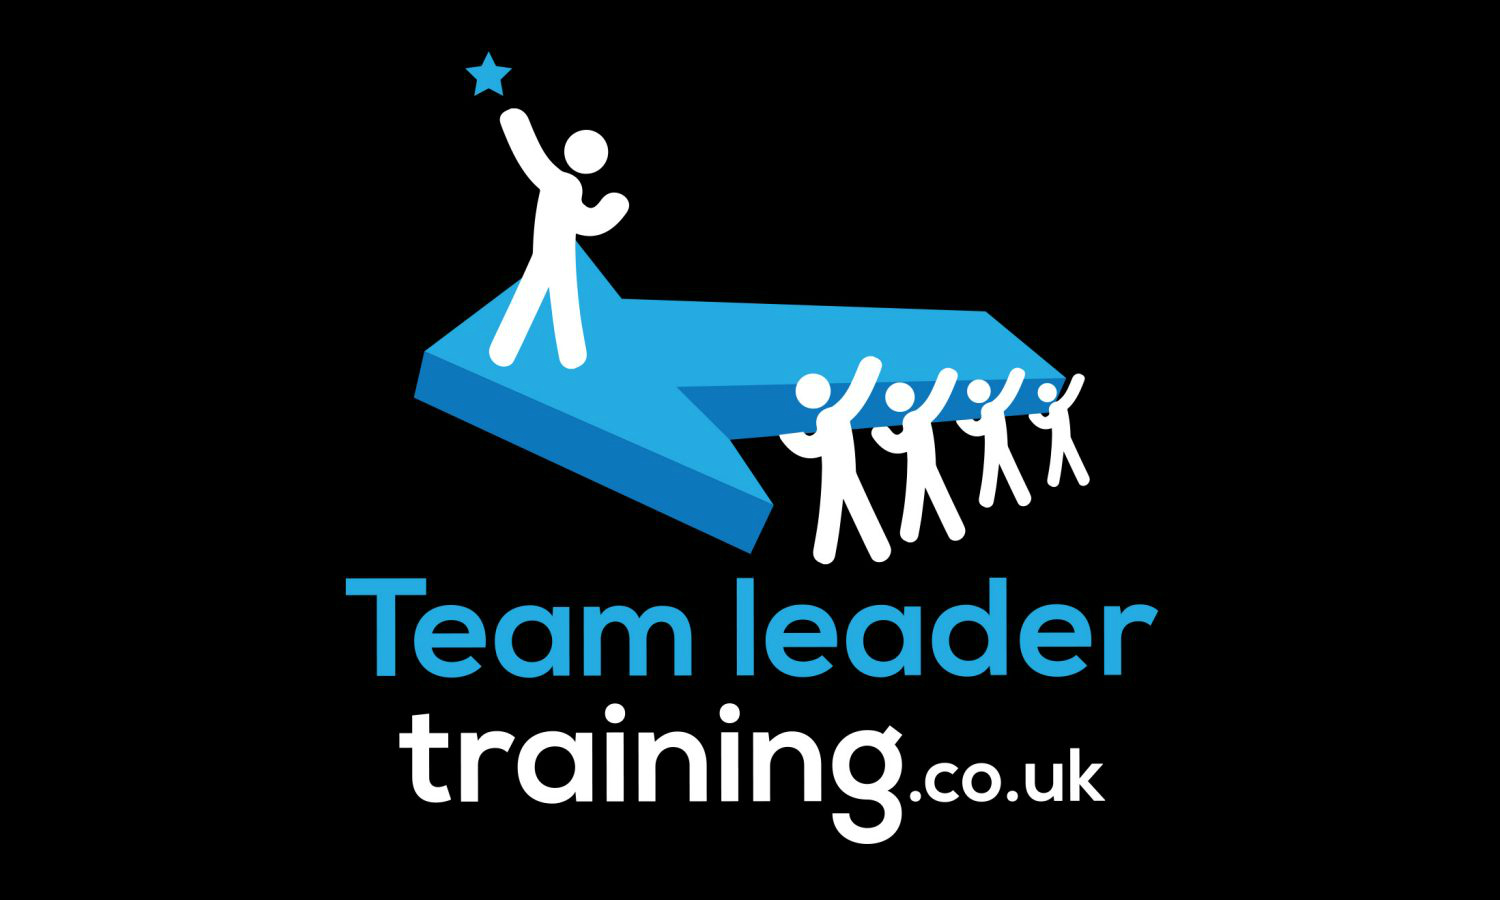 www.teamleadertraining.co.uk